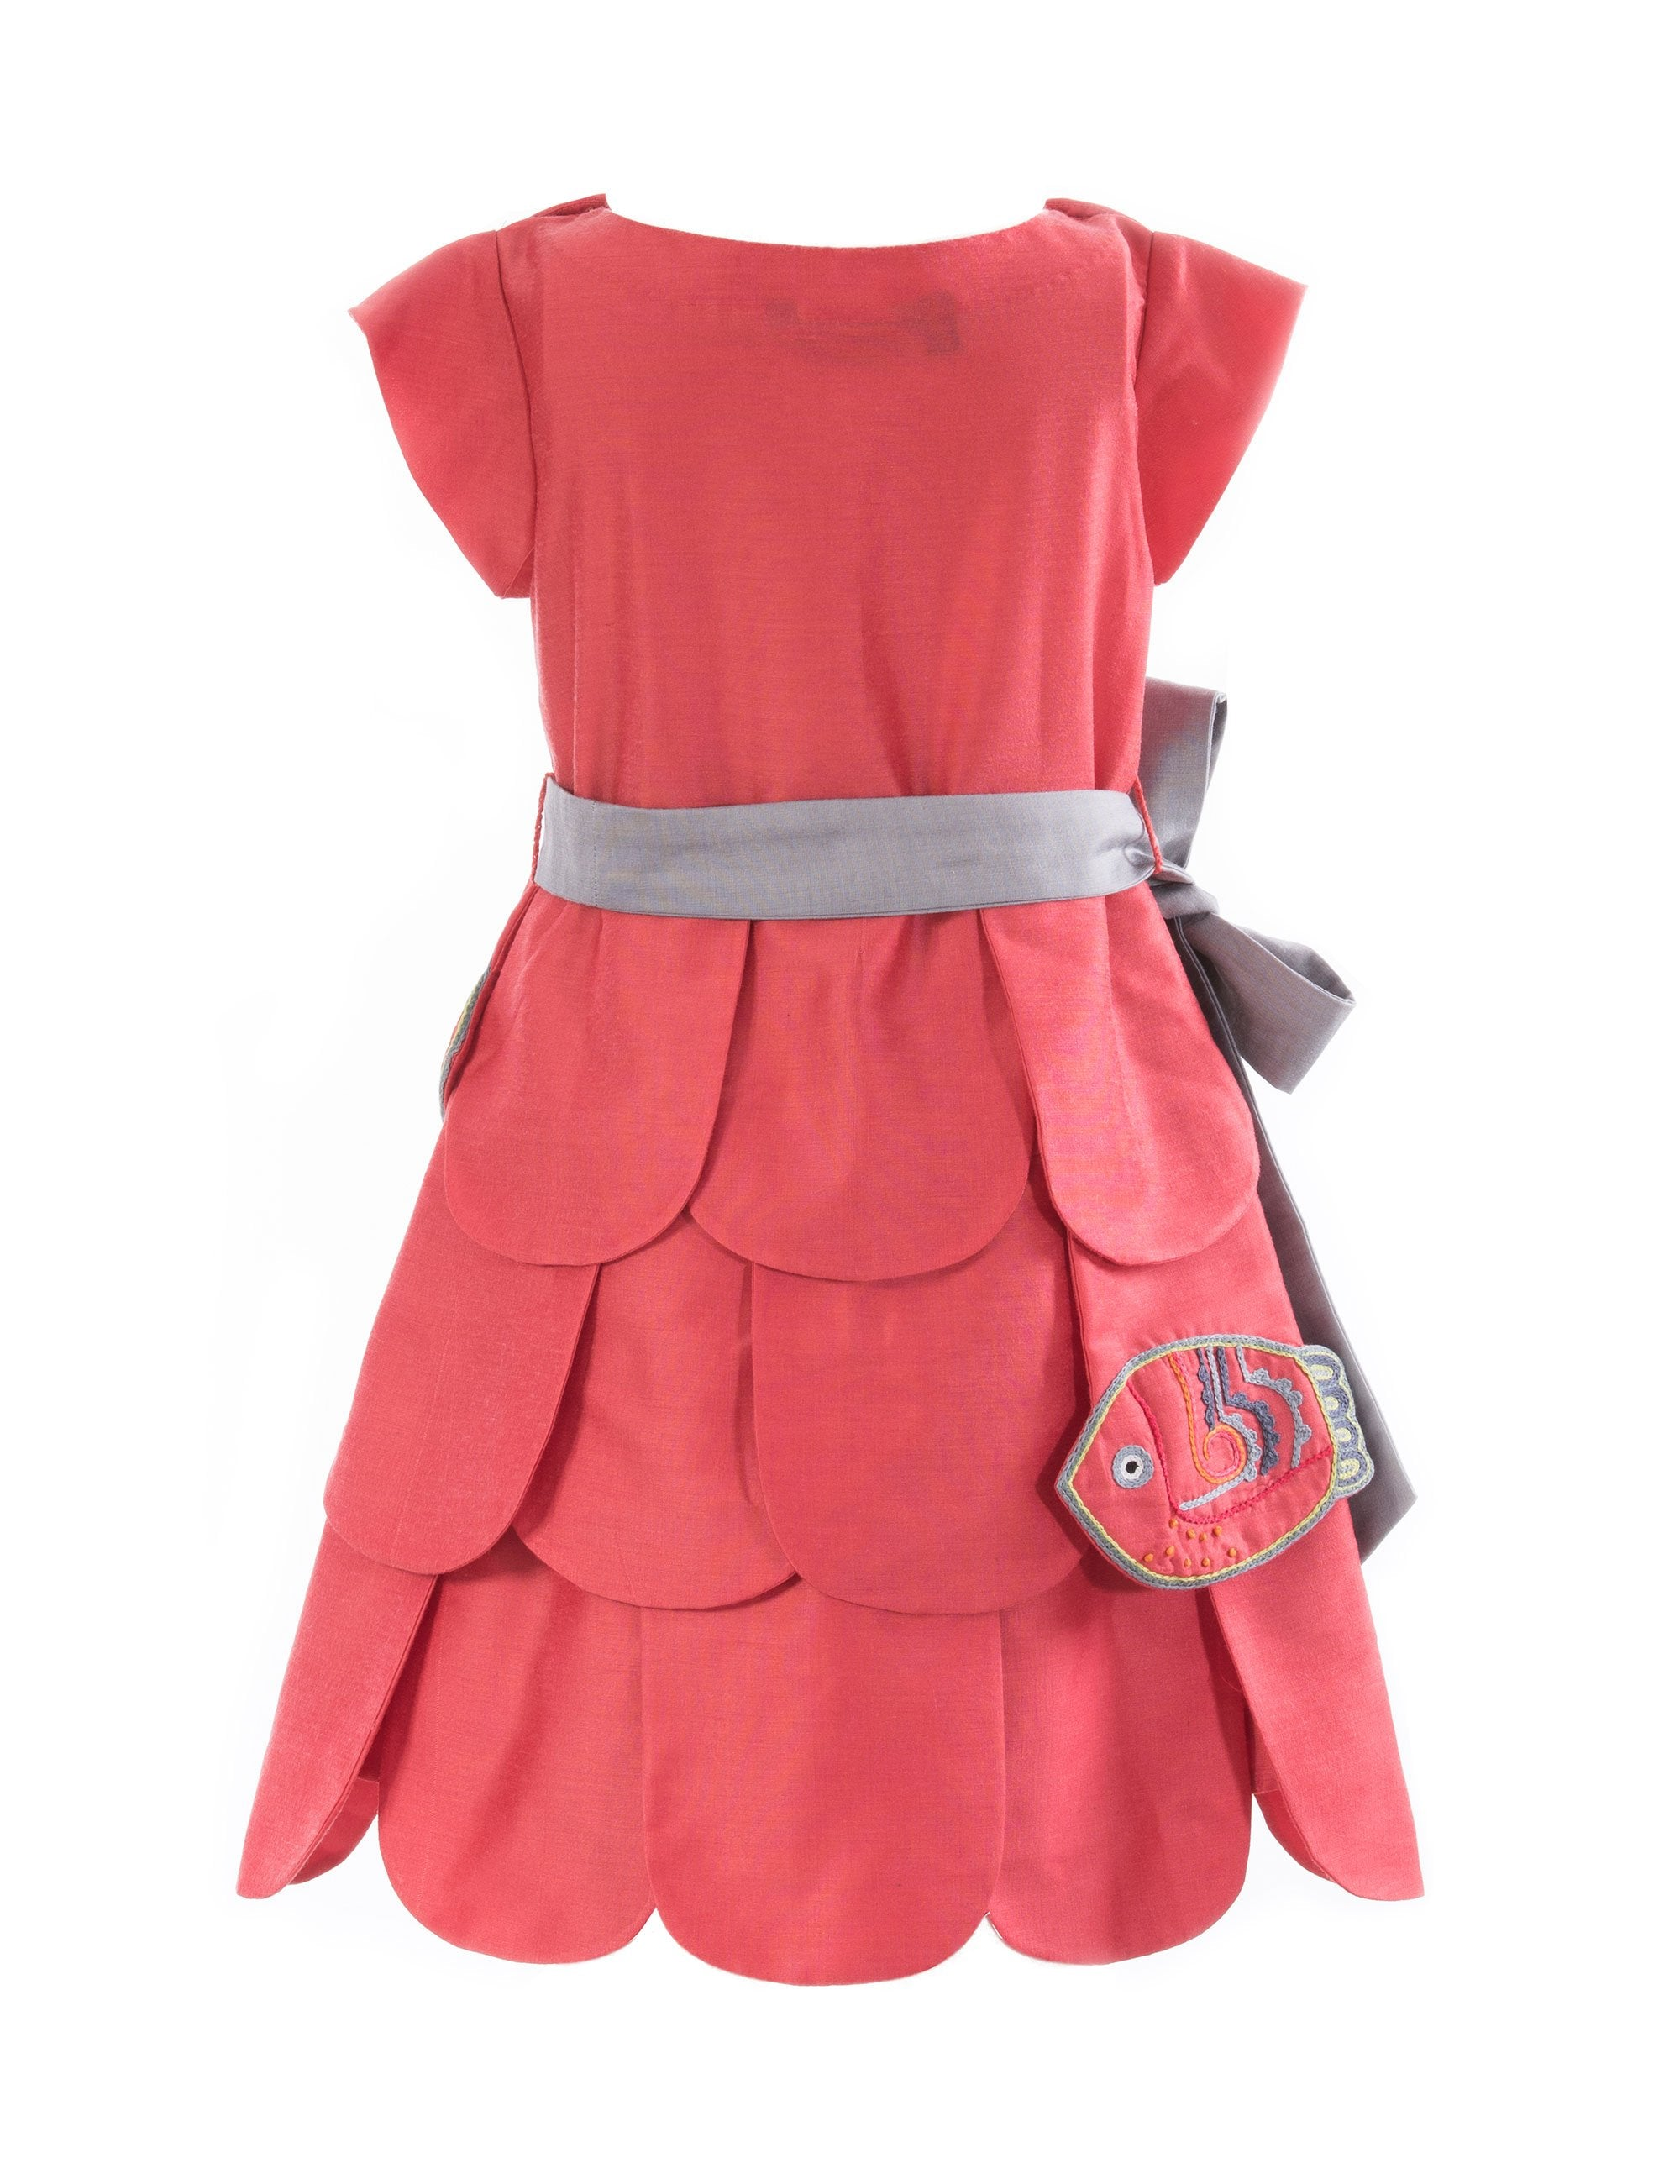 Save Our Seas Tiered Dress in Pink for Girls